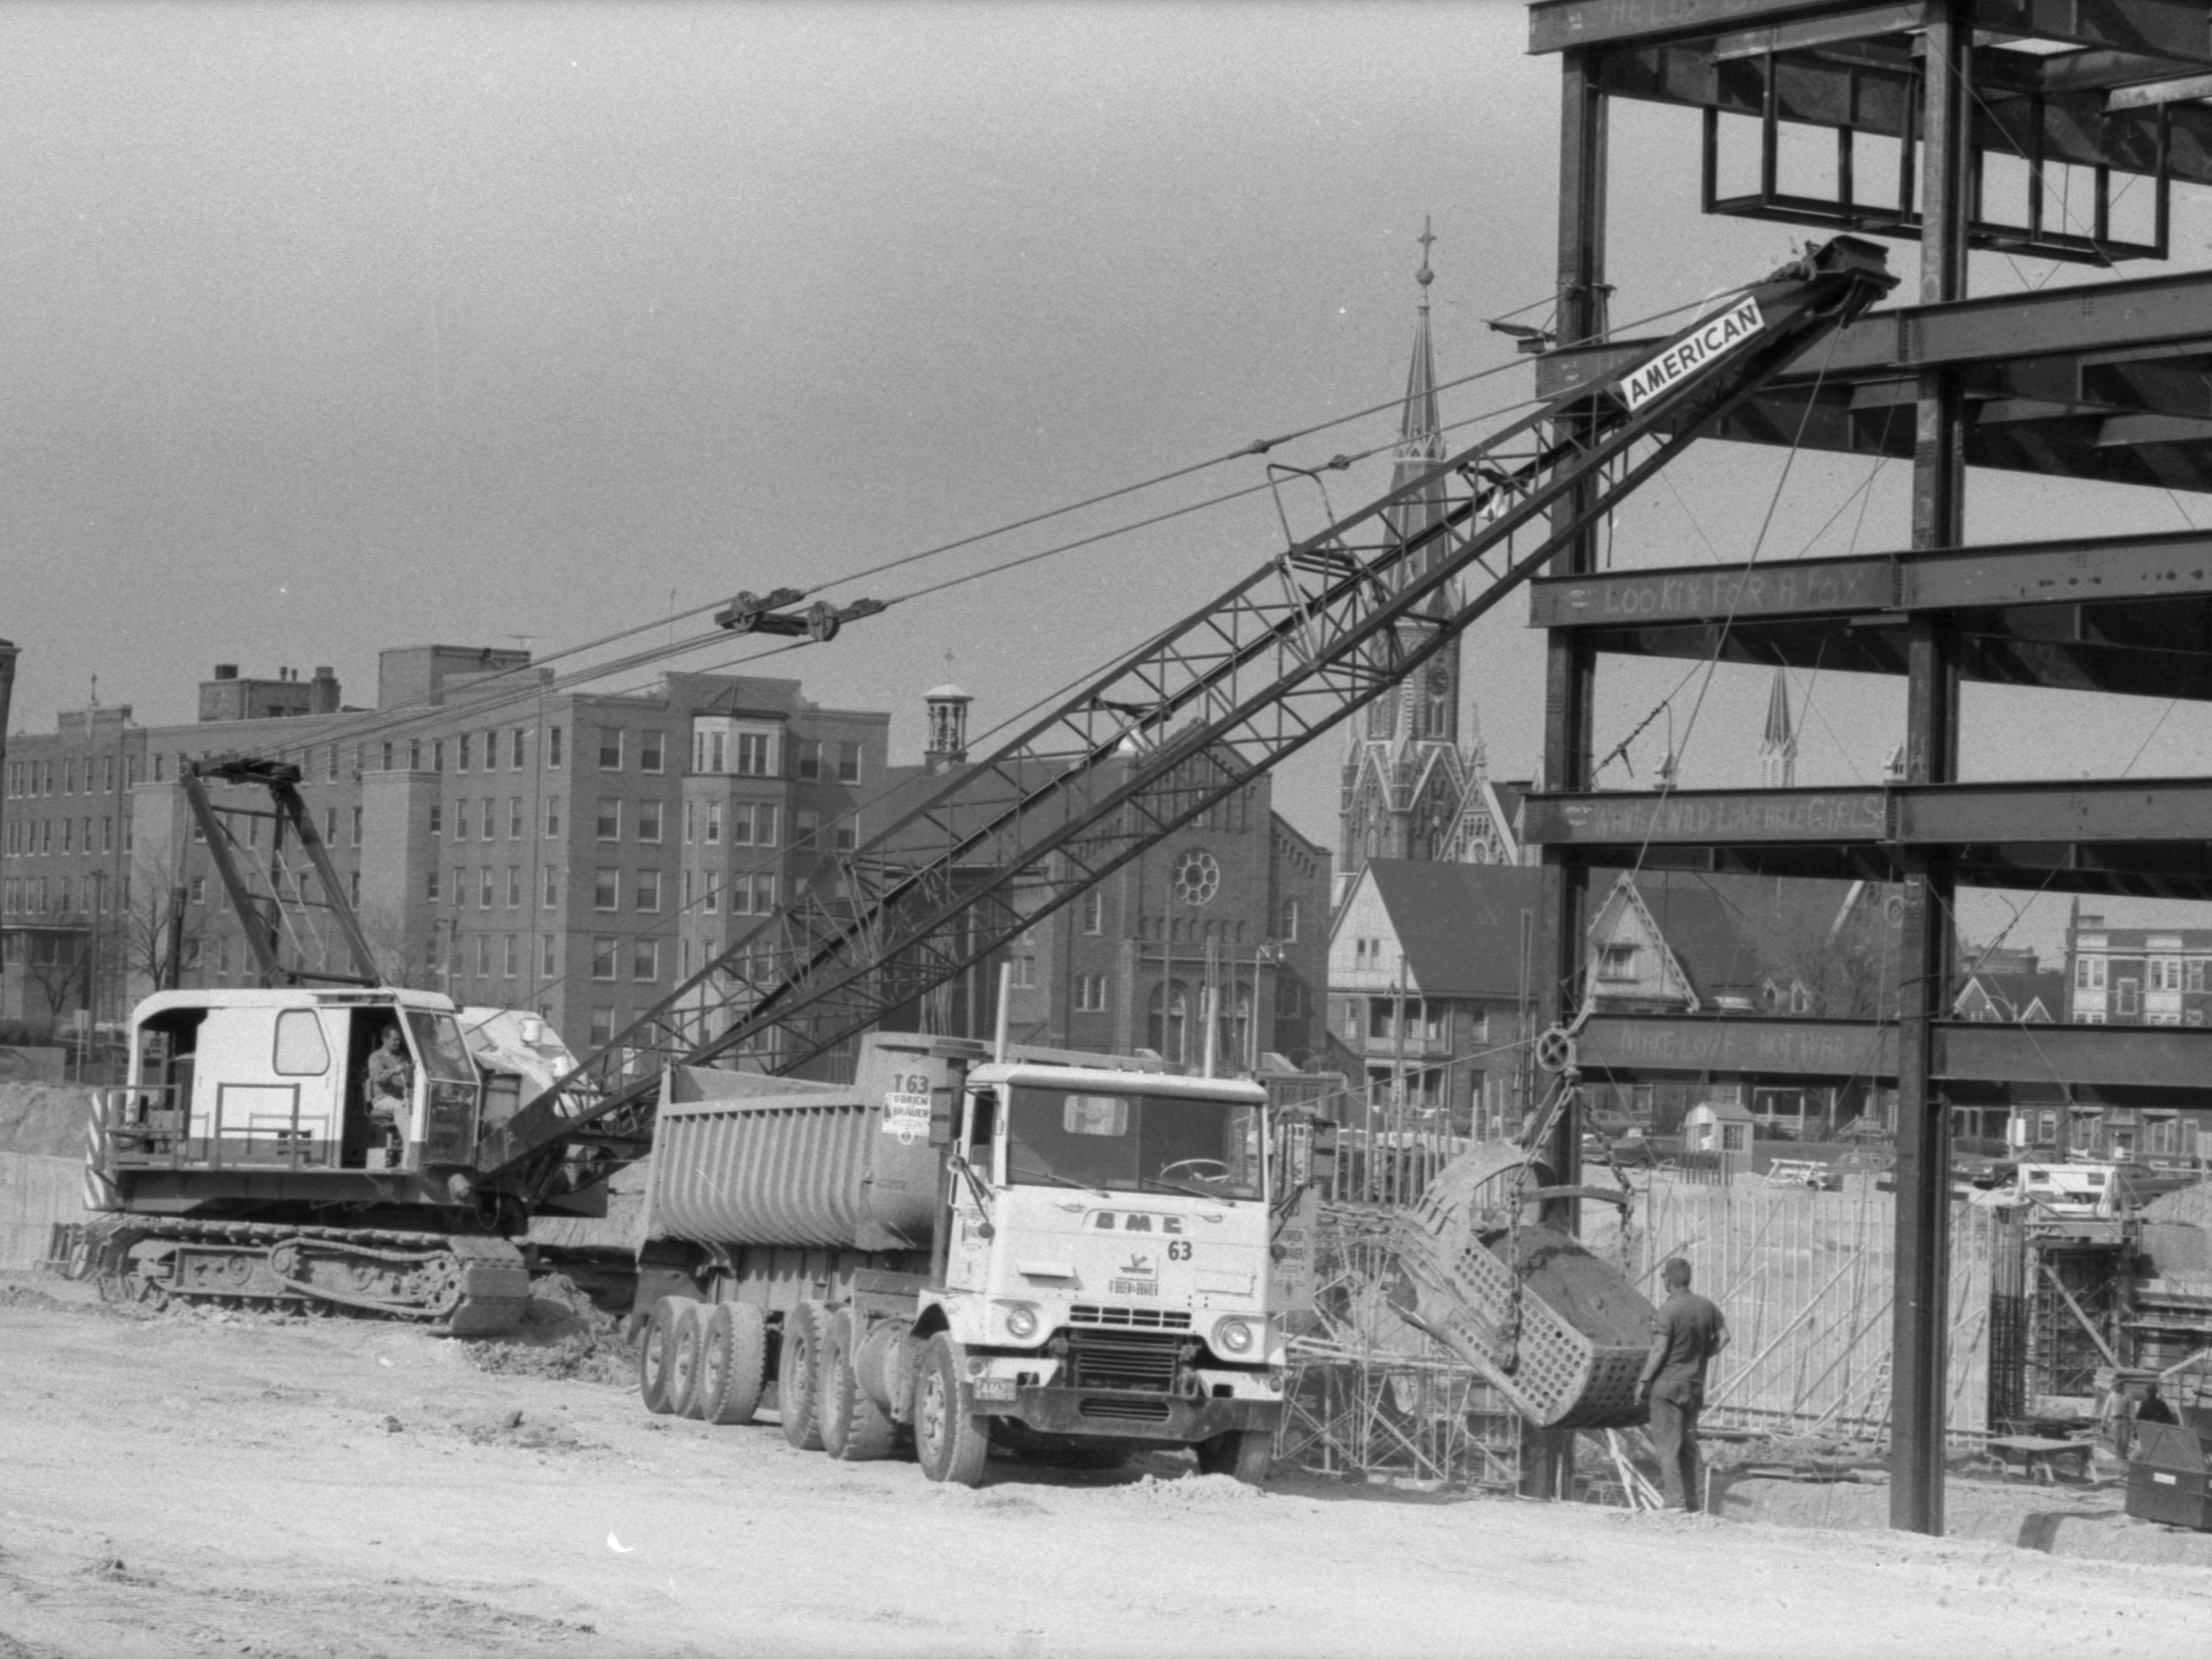 Construction workers scramble during the spring of 1968 to make progress on the new County Courthouse Annex, which will straddle the northbound North-South Freeway just north of the Marquette Interchange.